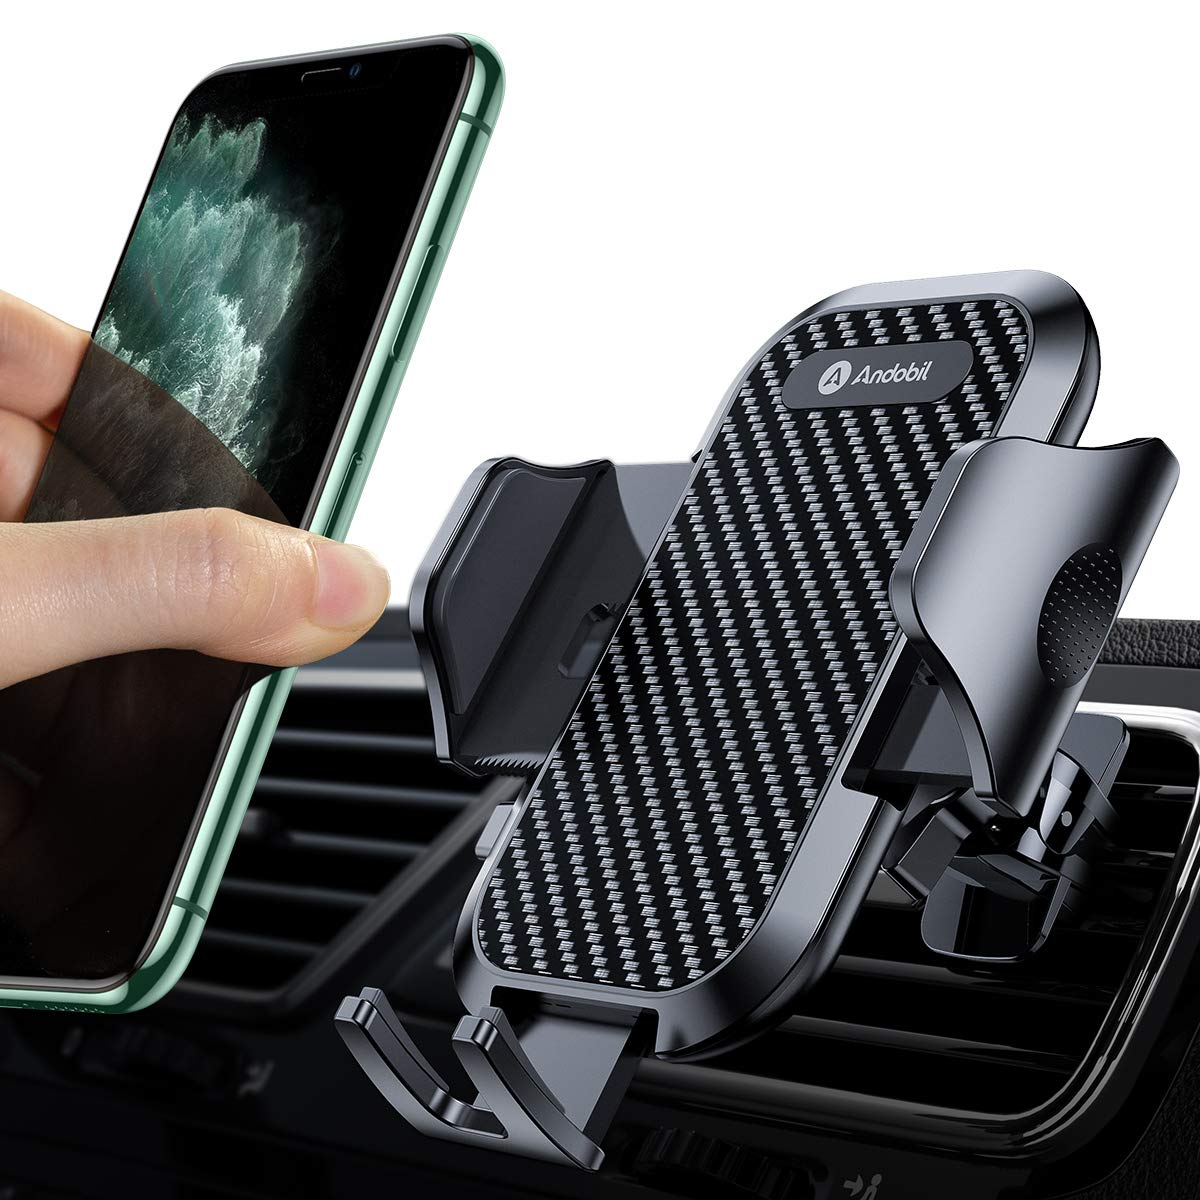 Andobil Auto Phone Mount Ultimate Smartphone Auto Luft Vent Holder Easy Clamp Cradle Hands-Free Compatible für Iphone 11/11 Pro/ 11 Pro Max/ 8 Plus/8/X/Xr/Xs Samsung S10/S9/S8/Note 10/10+ Black